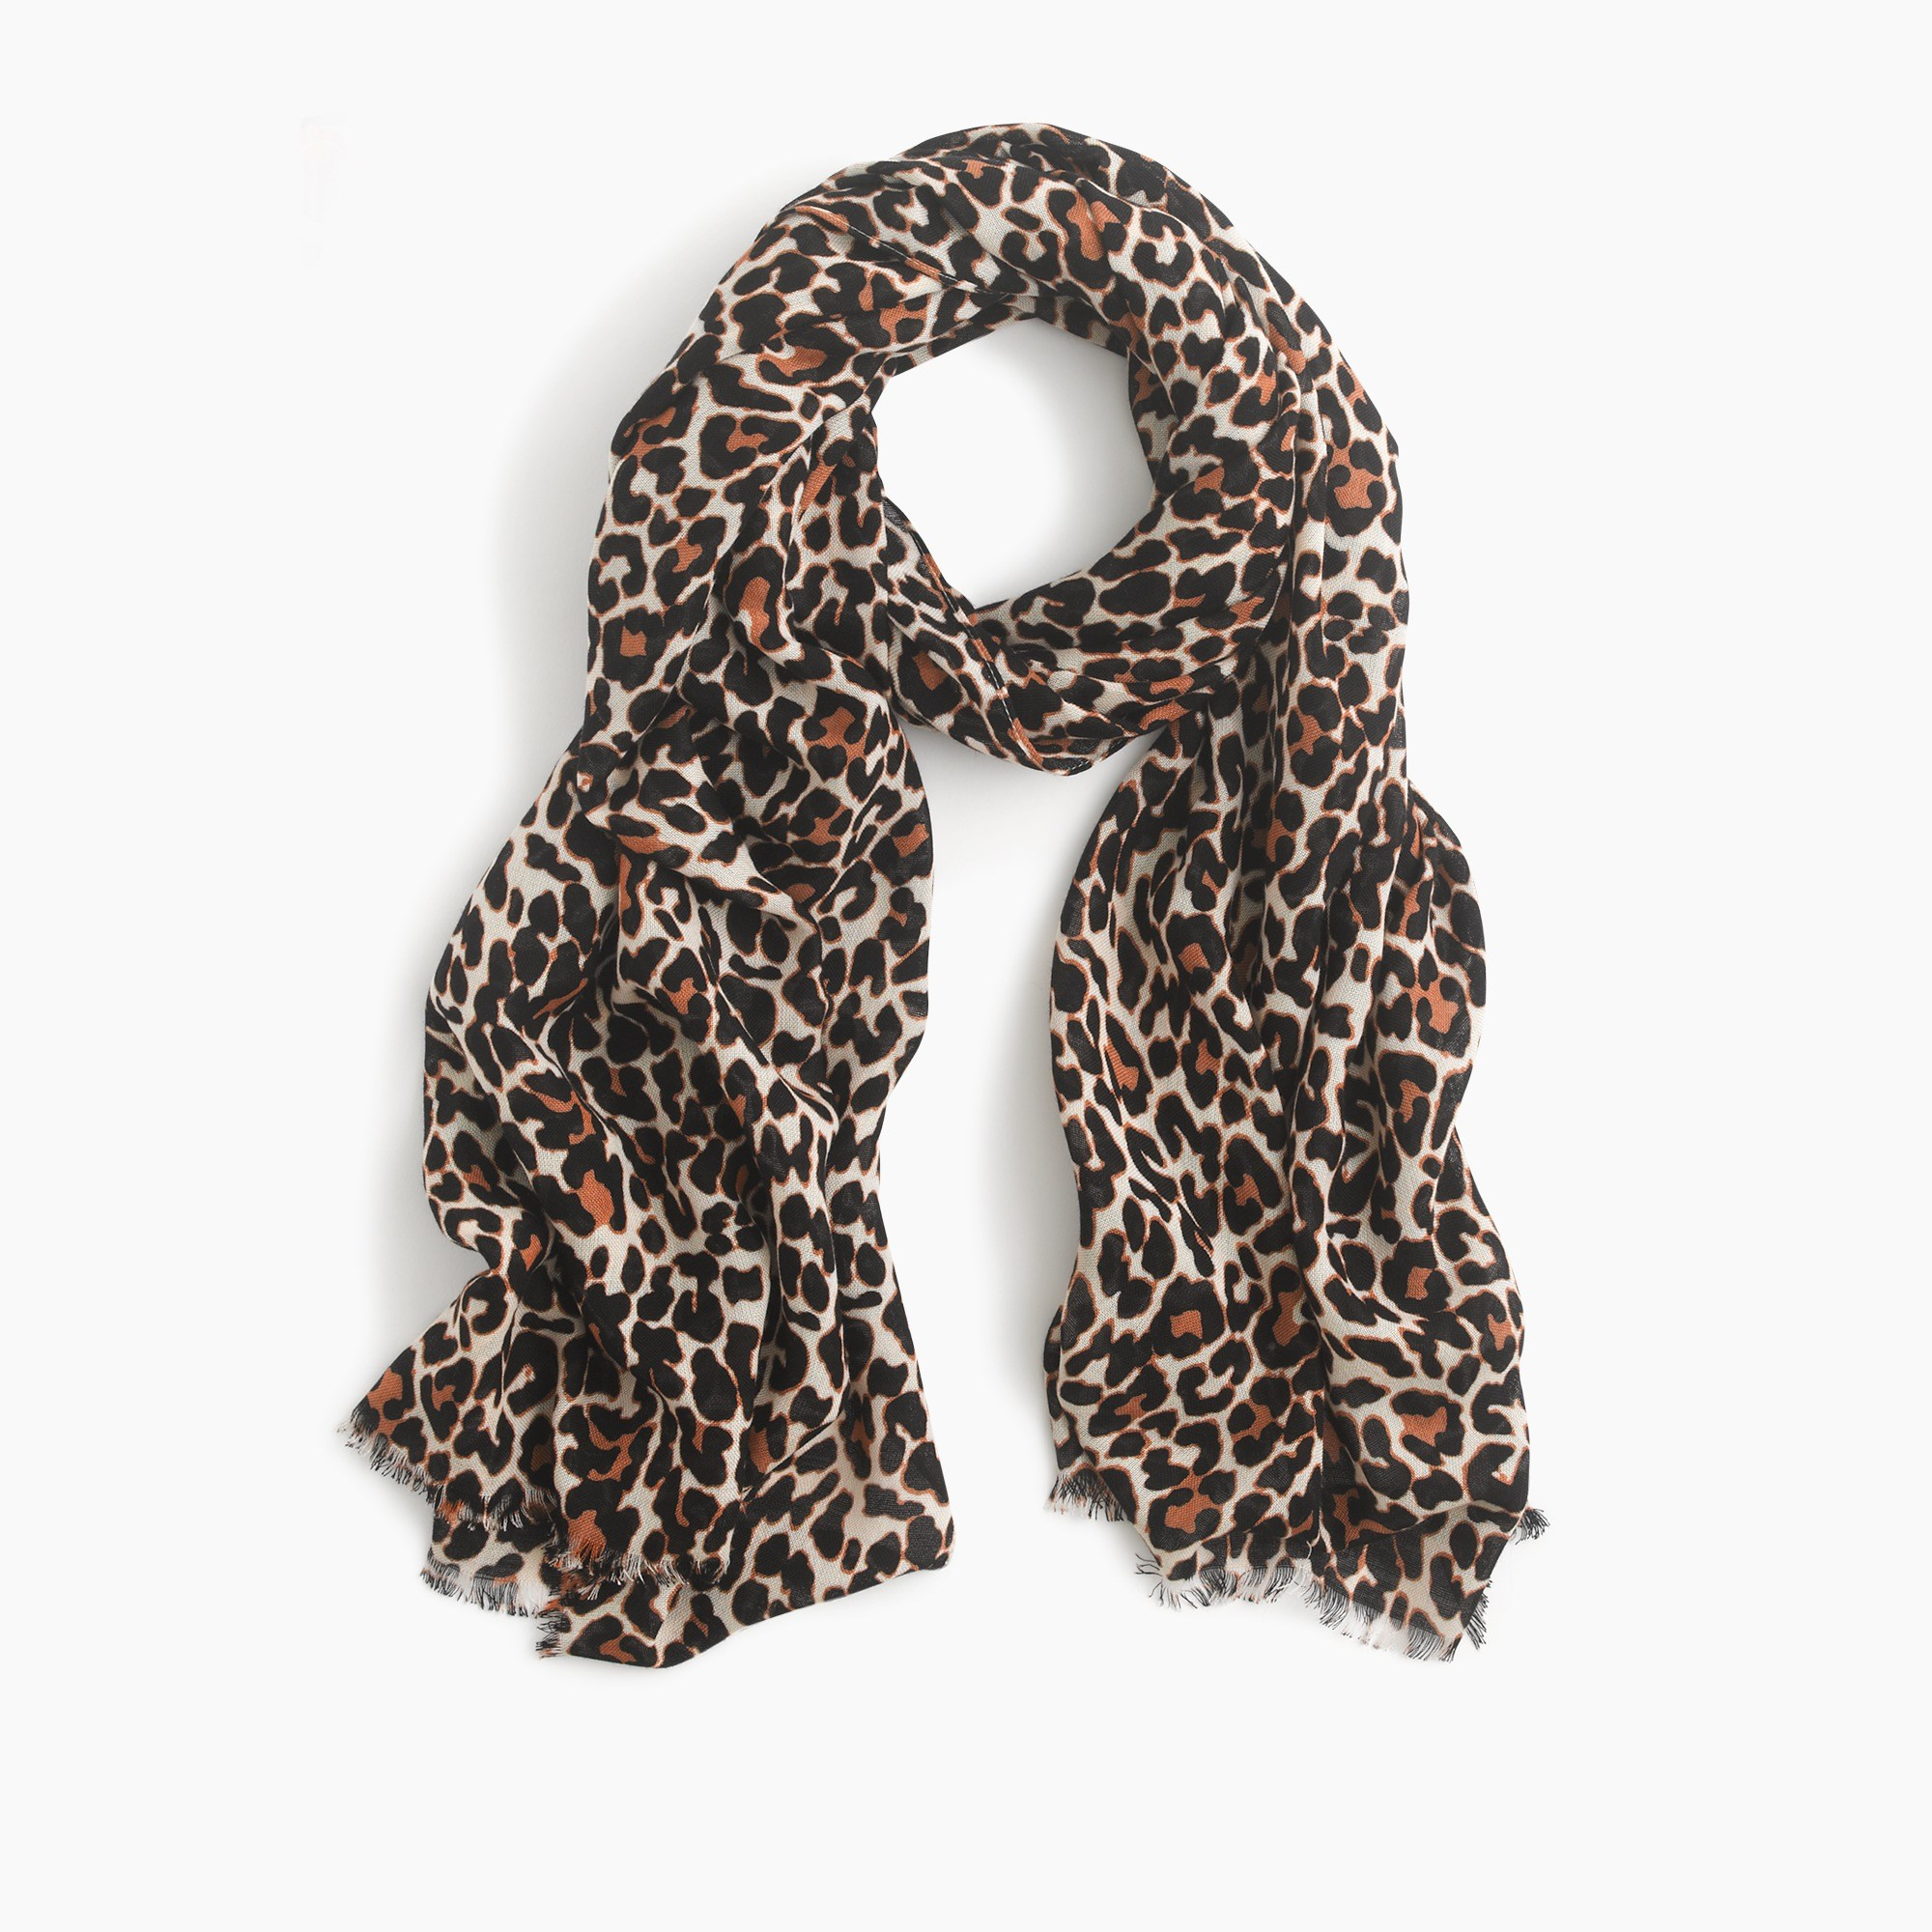 Leopard scarf : Women scarves, hats & gloves | J.Crew